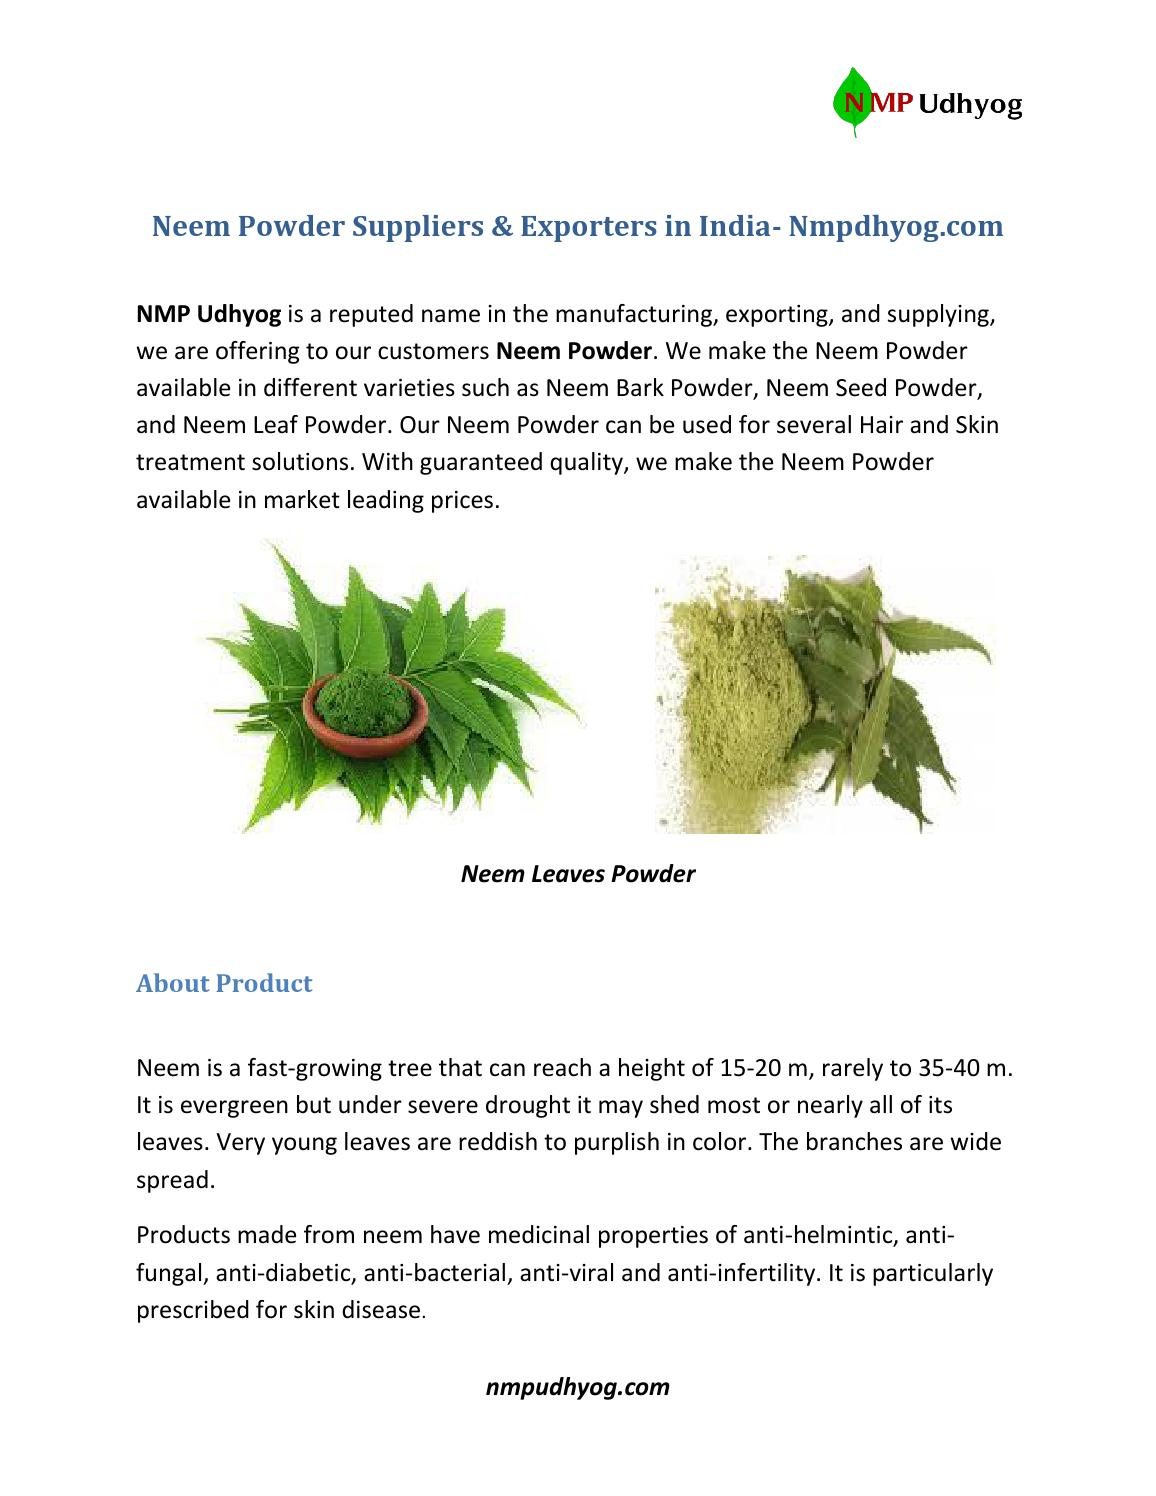 Neem powder suppliers & exporters in india nmp udhyog by